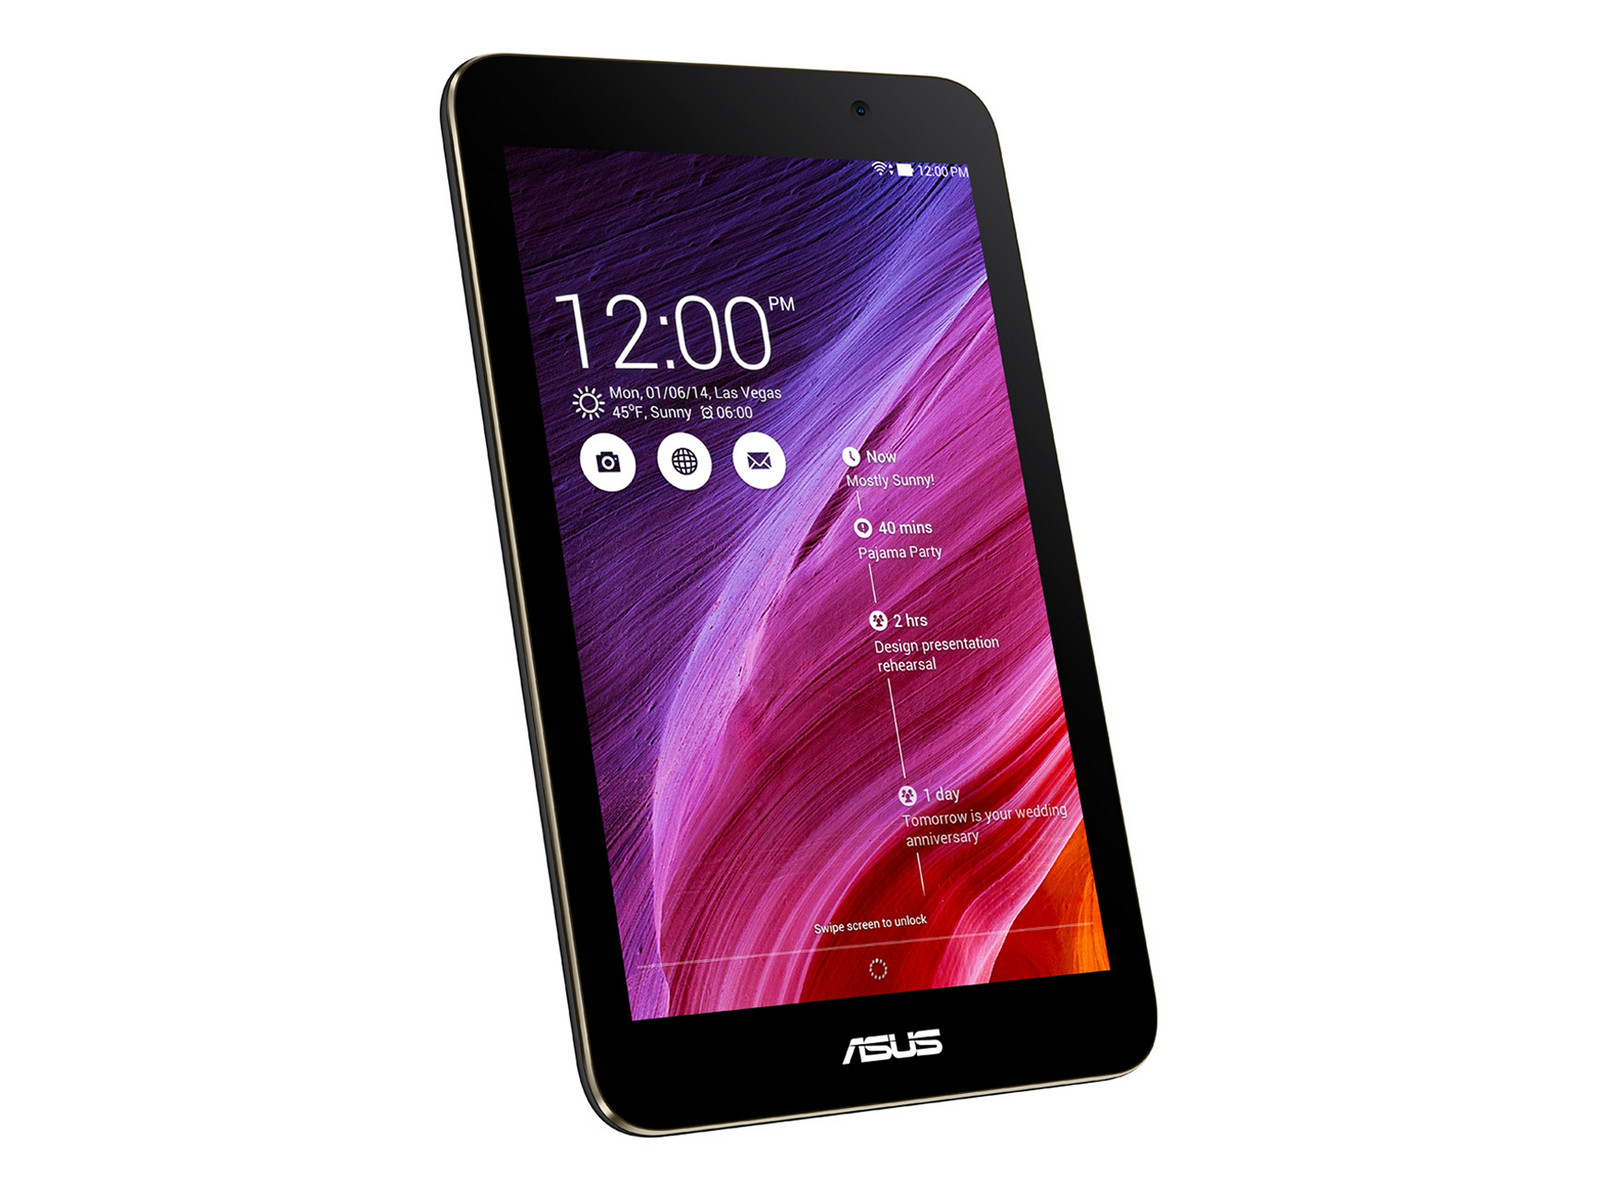 Asus Memo Pad HD 7 ME176C Tablet Review - NotebookCheck.net Reviews